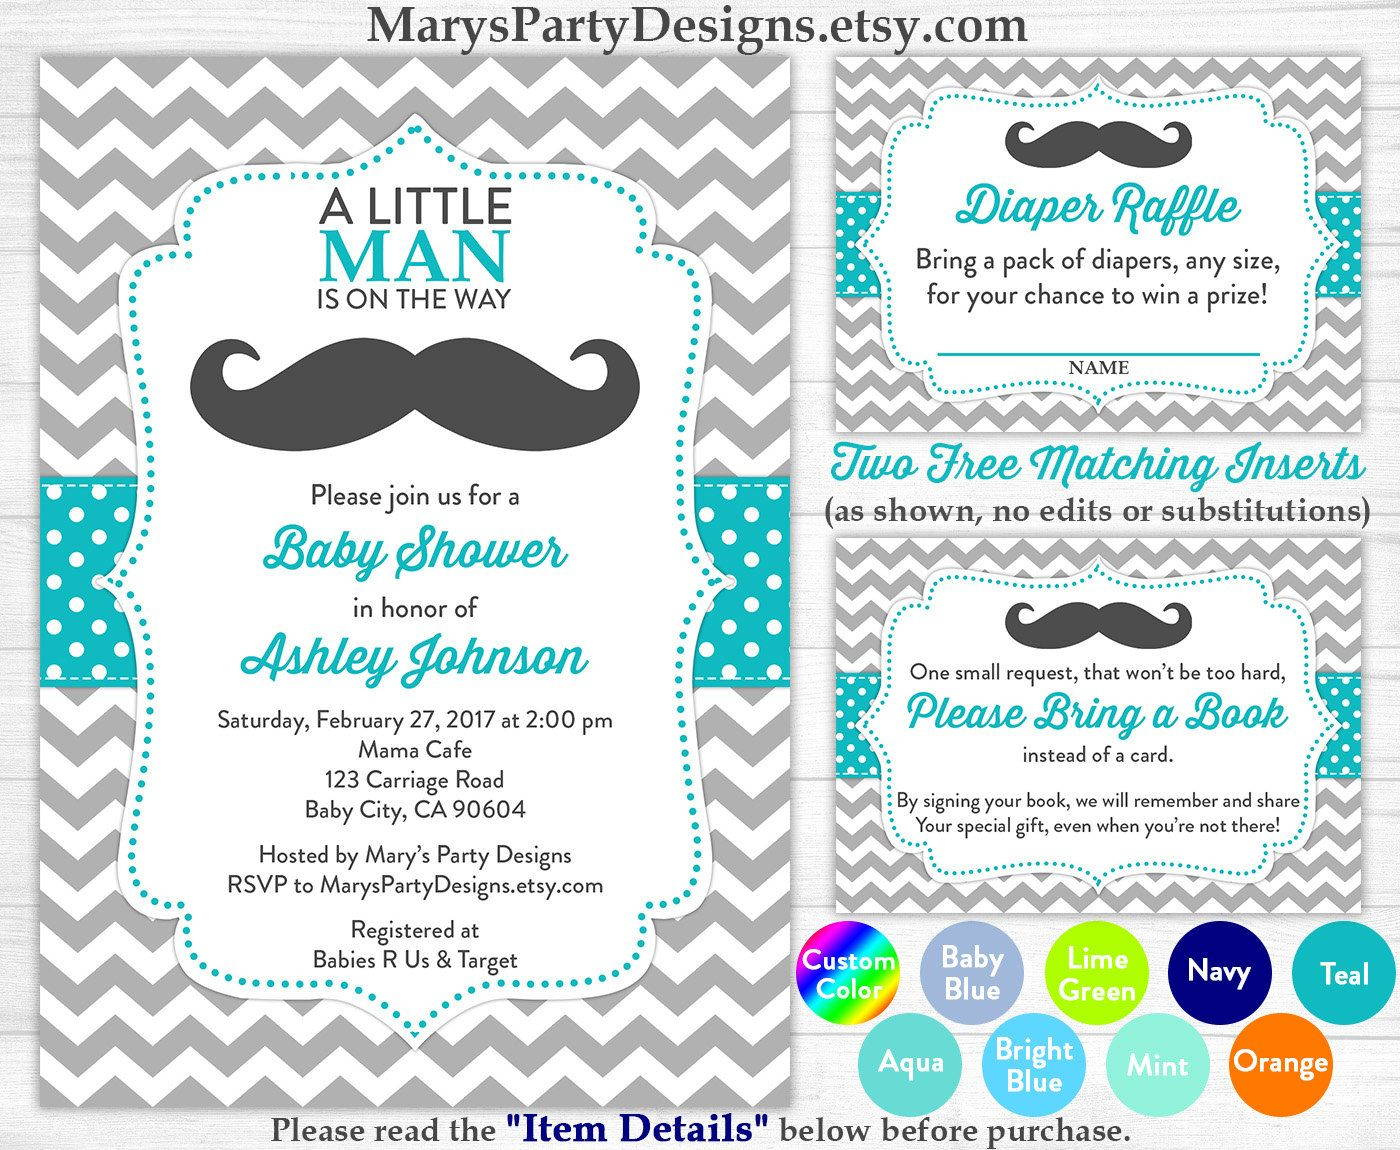 Little Man Baby Shower Invitation - Boy Baby Teal Blue Mustache - Free Printable Diaper Raffle Tickets For Boy Baby Shower